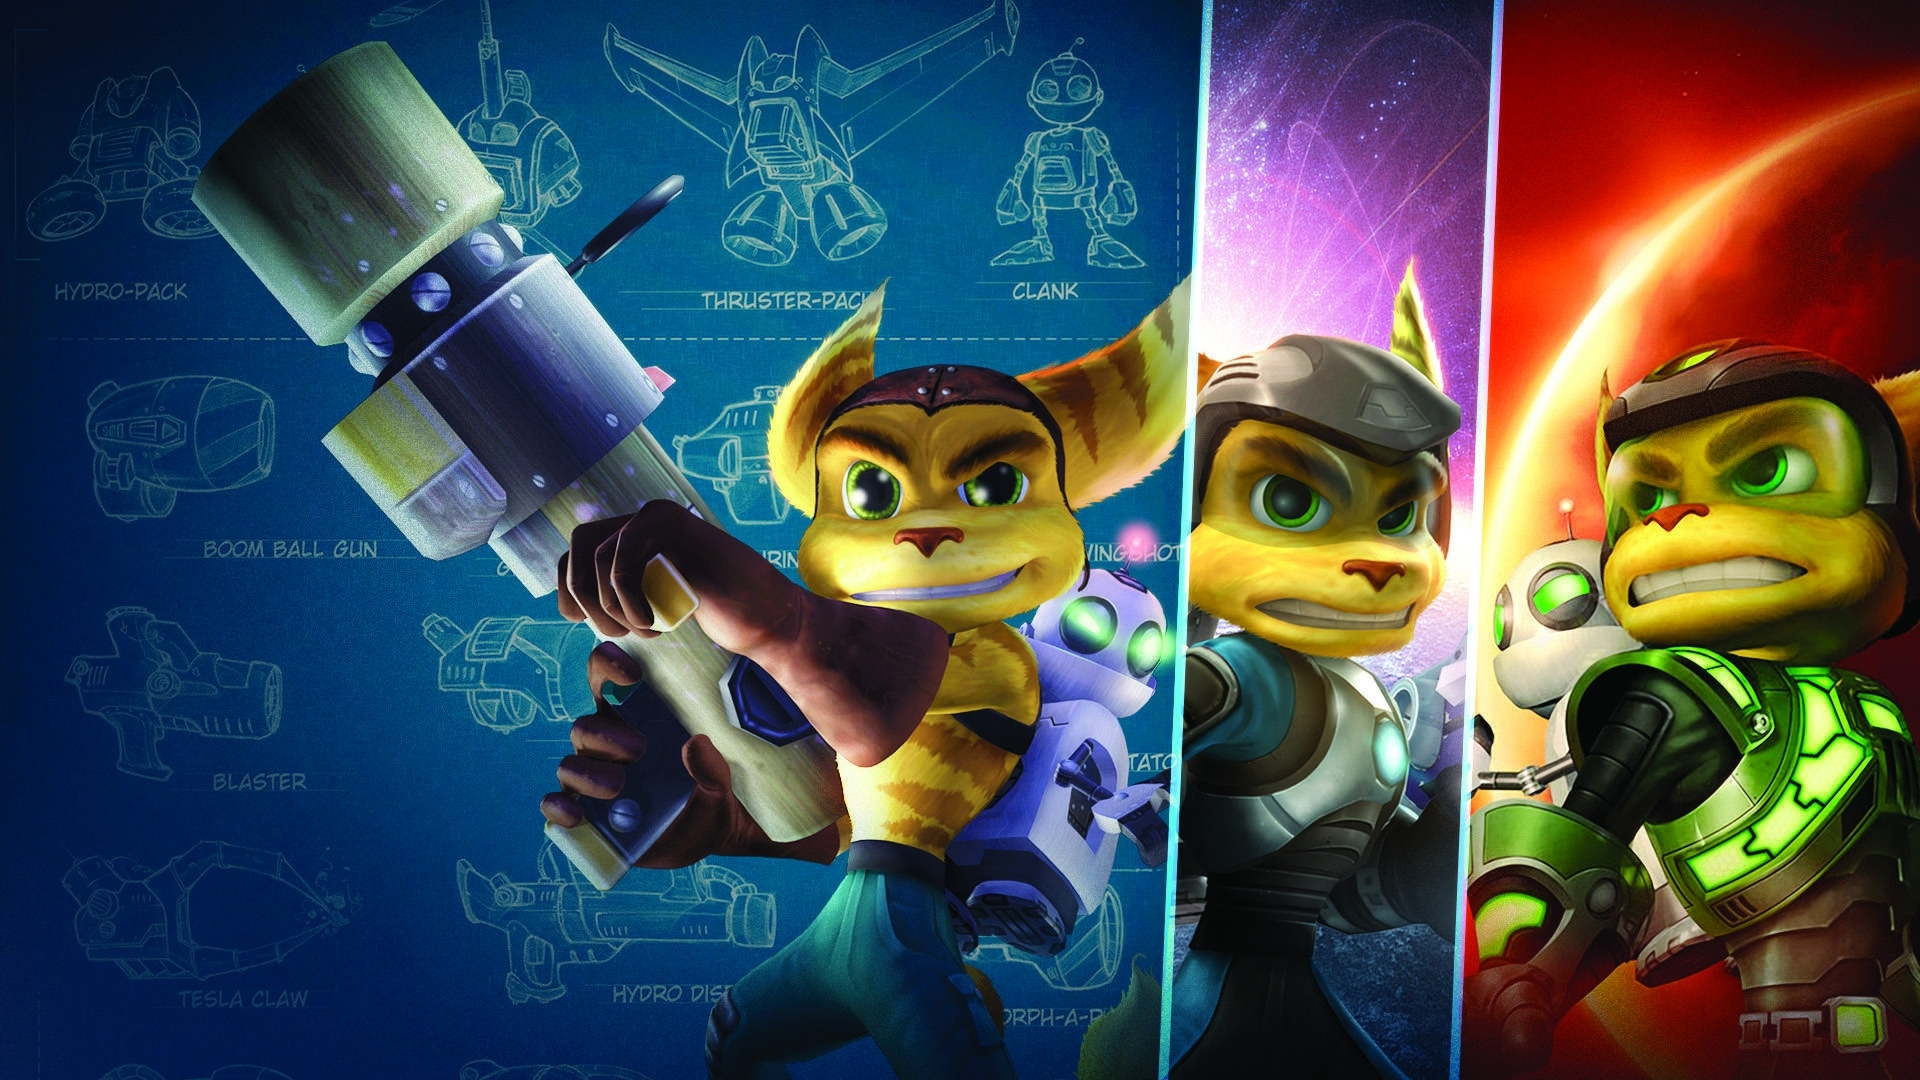 ratchet and clank wallpaper hd (80+ images)